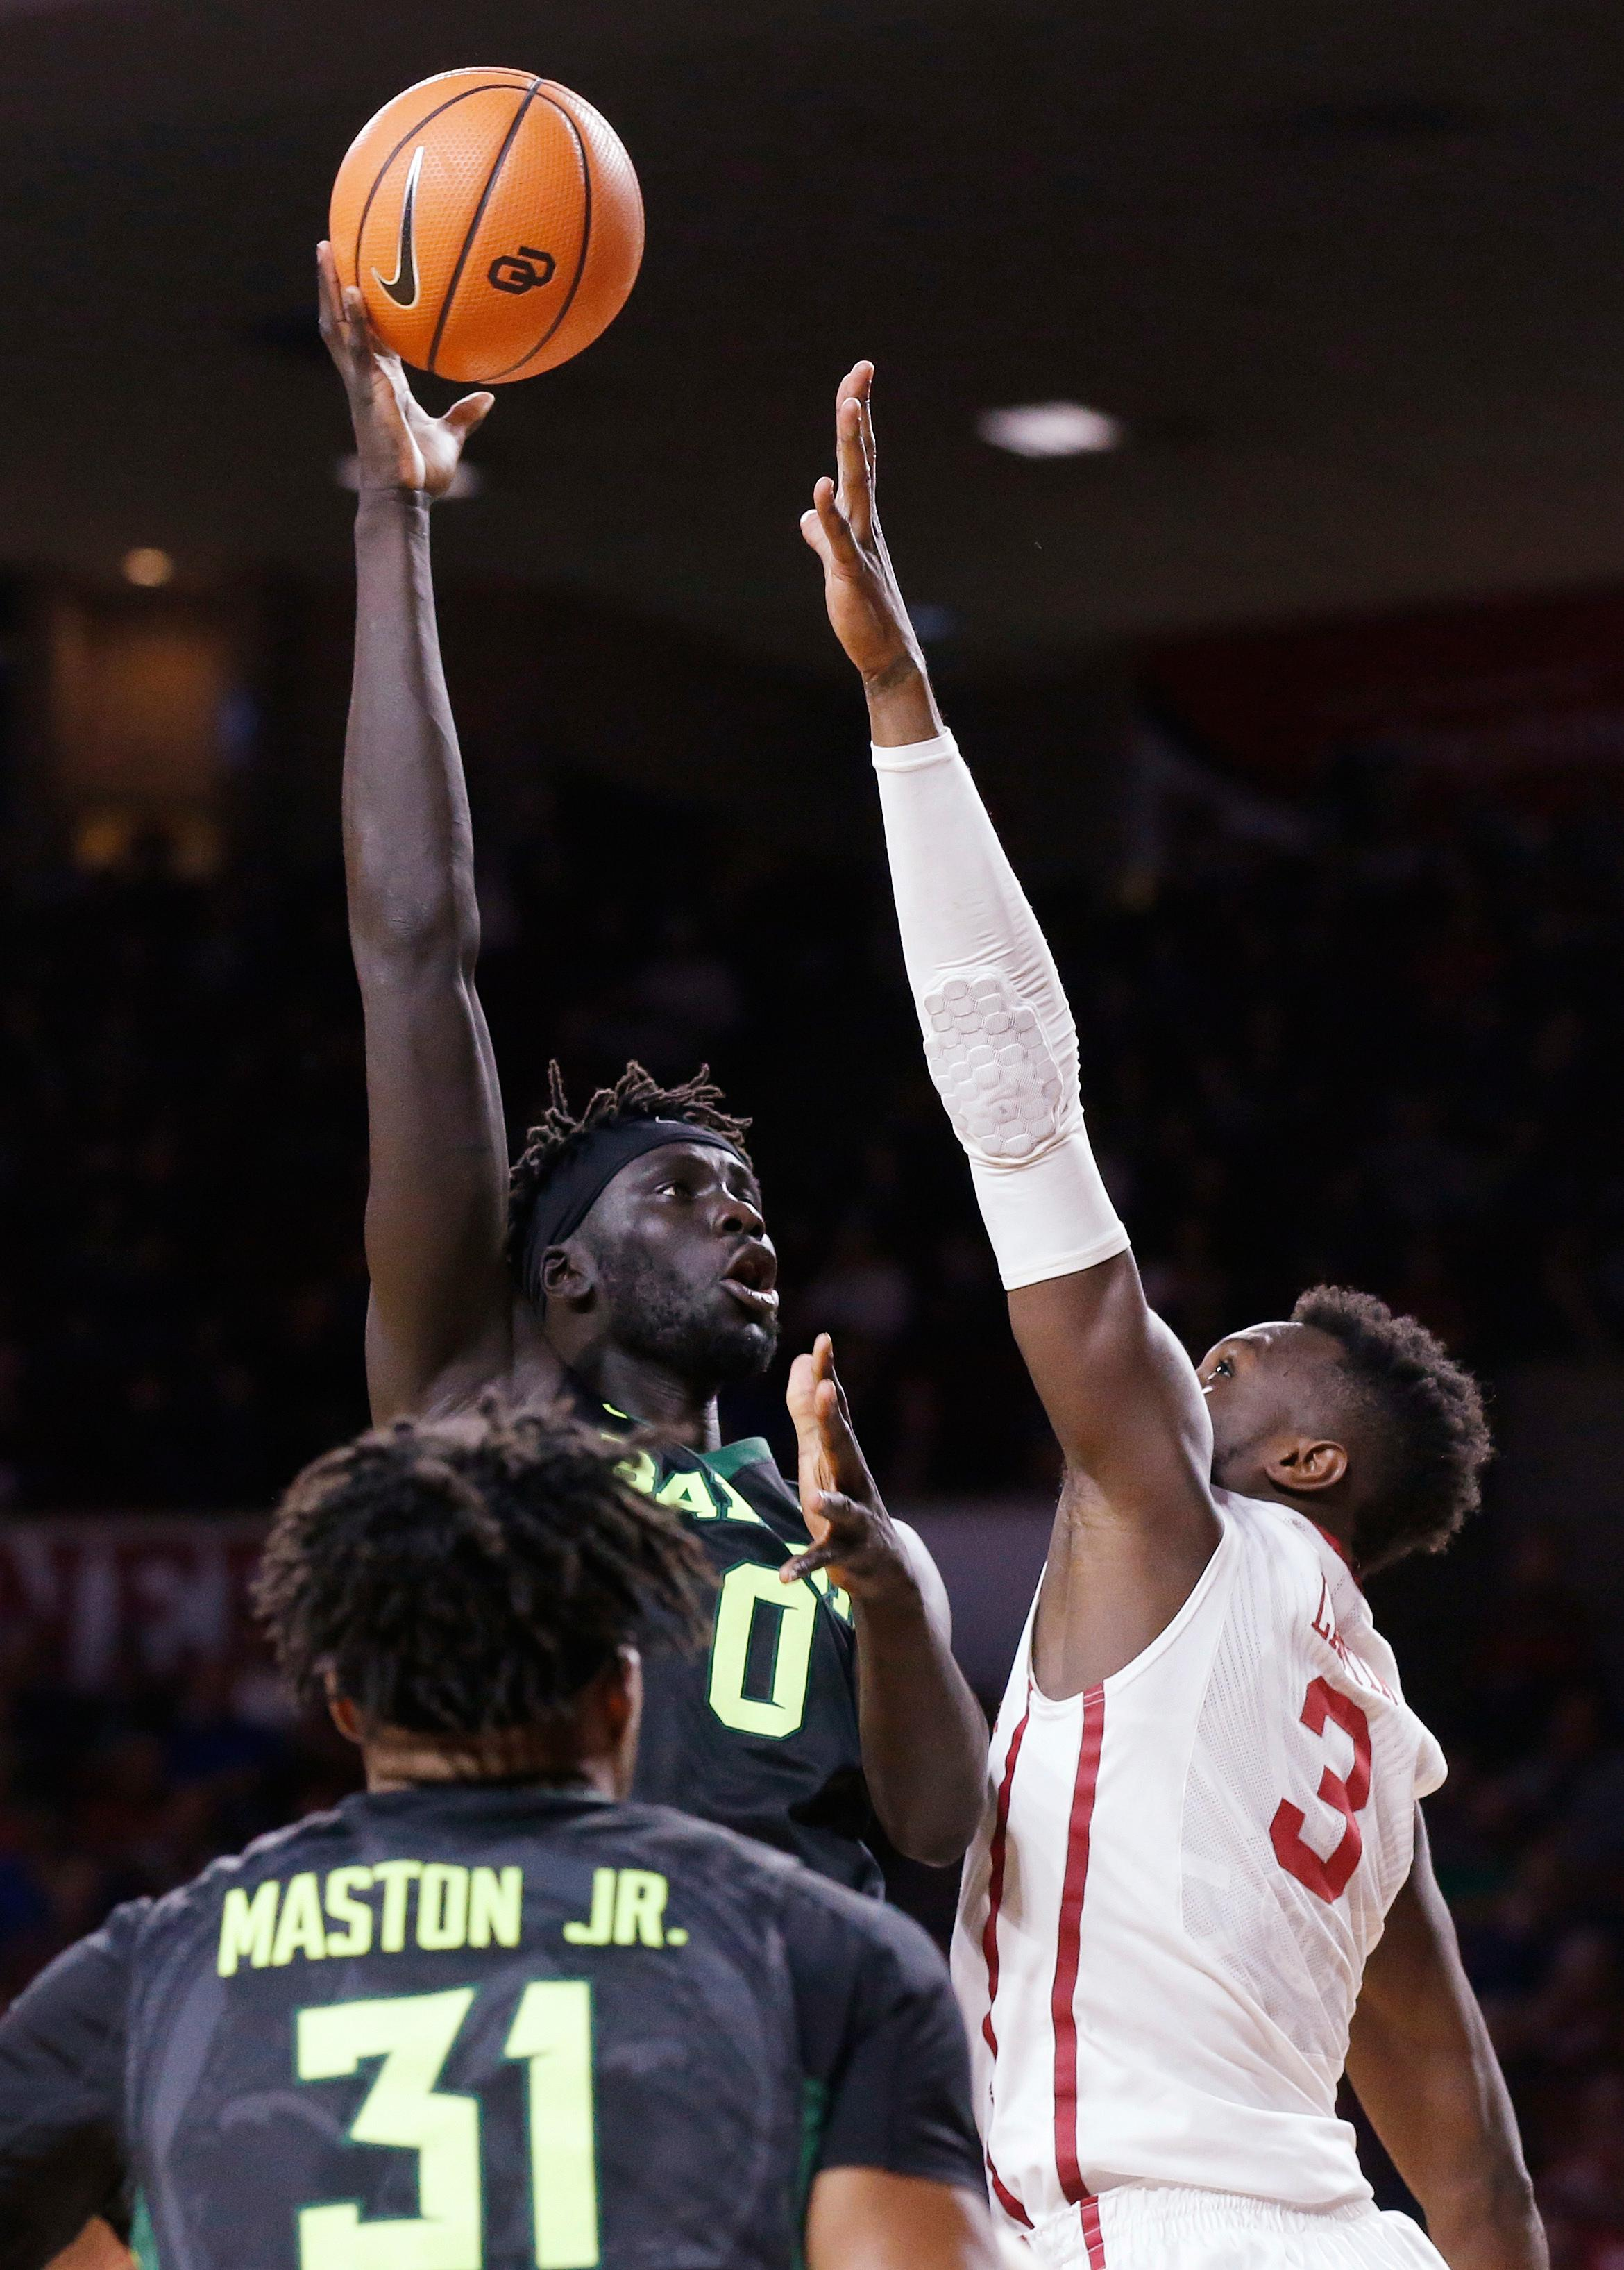 Baylor forward Jo Lual-Acuil Jr. (0) shoots over Oklahoma forward Khadeem Lattin, right, during the first half of an NCAA college basketball game in Norman, Okla., Tuesday, Jan. 30, 2018. (AP Photo/Sue Ogrocki)